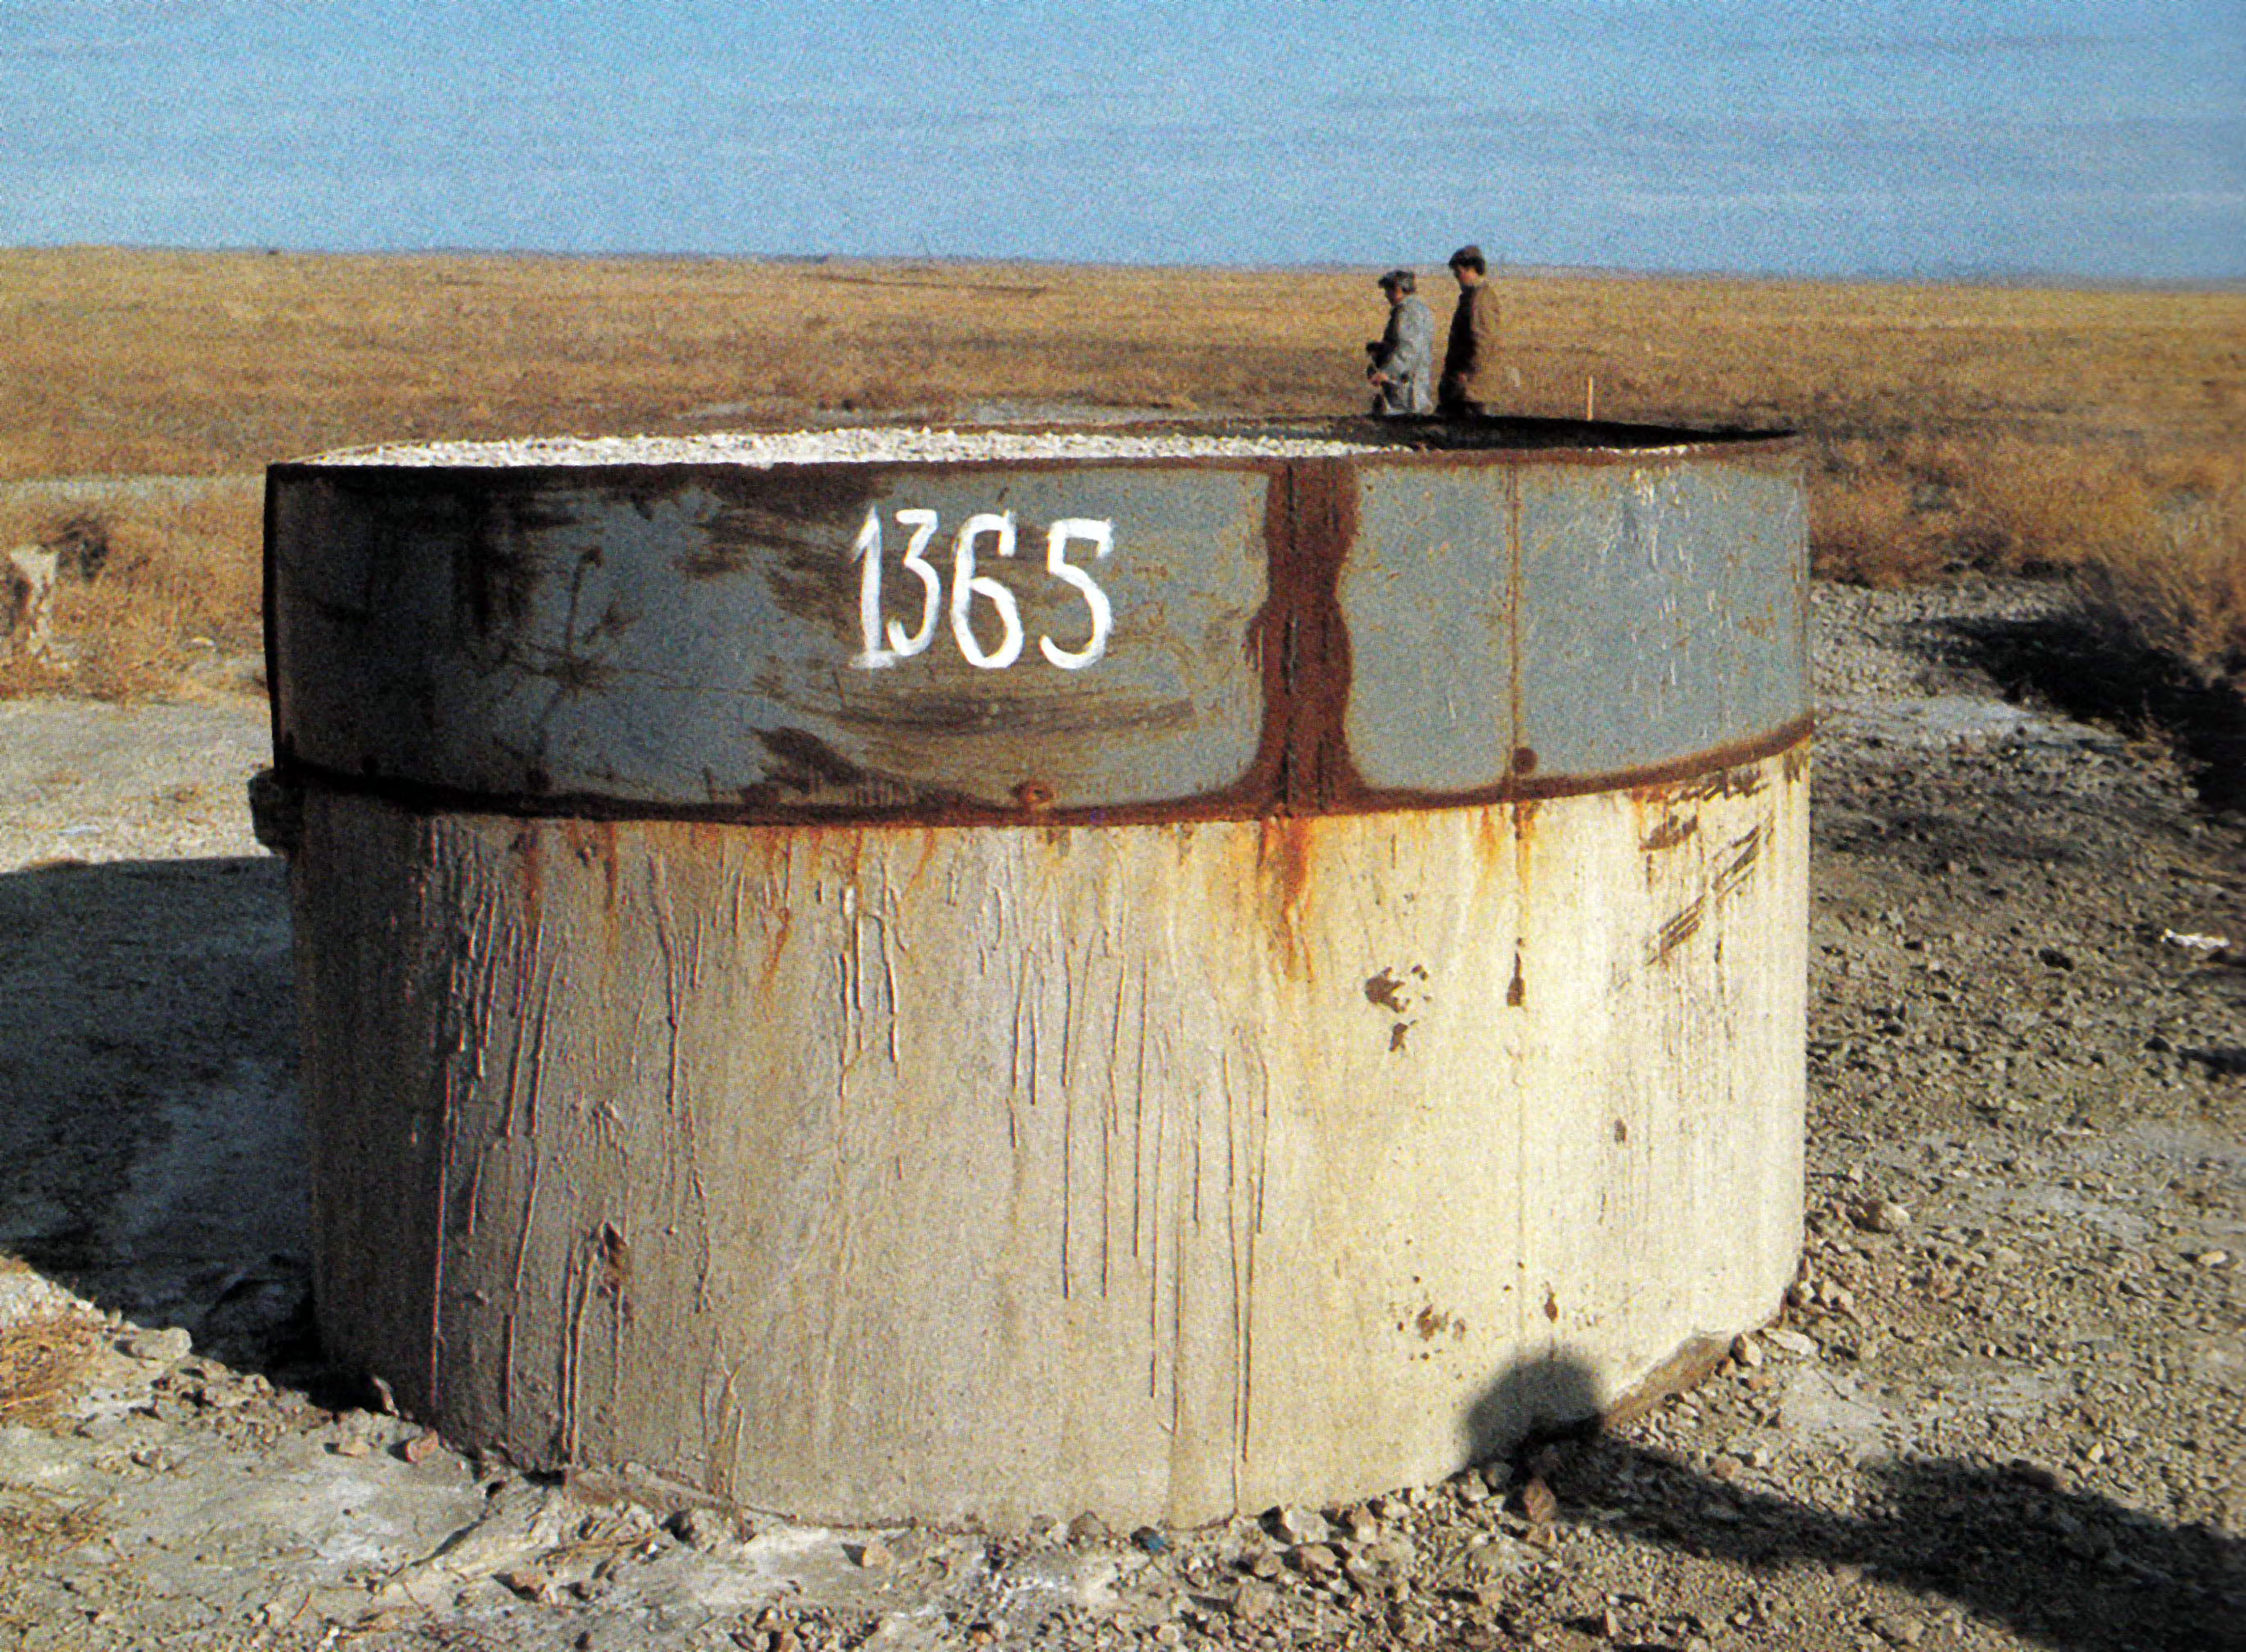 """The mark 1365 on the test site of the nuclear area is not just a number, but a historical landmark in the life of the testing area and its people. """"1365"""" means the number engraved on the concrete stopper of the well of the last nuclear explosion conducted at the Semipalatinsk testing area on the 19th of October, 1991."""